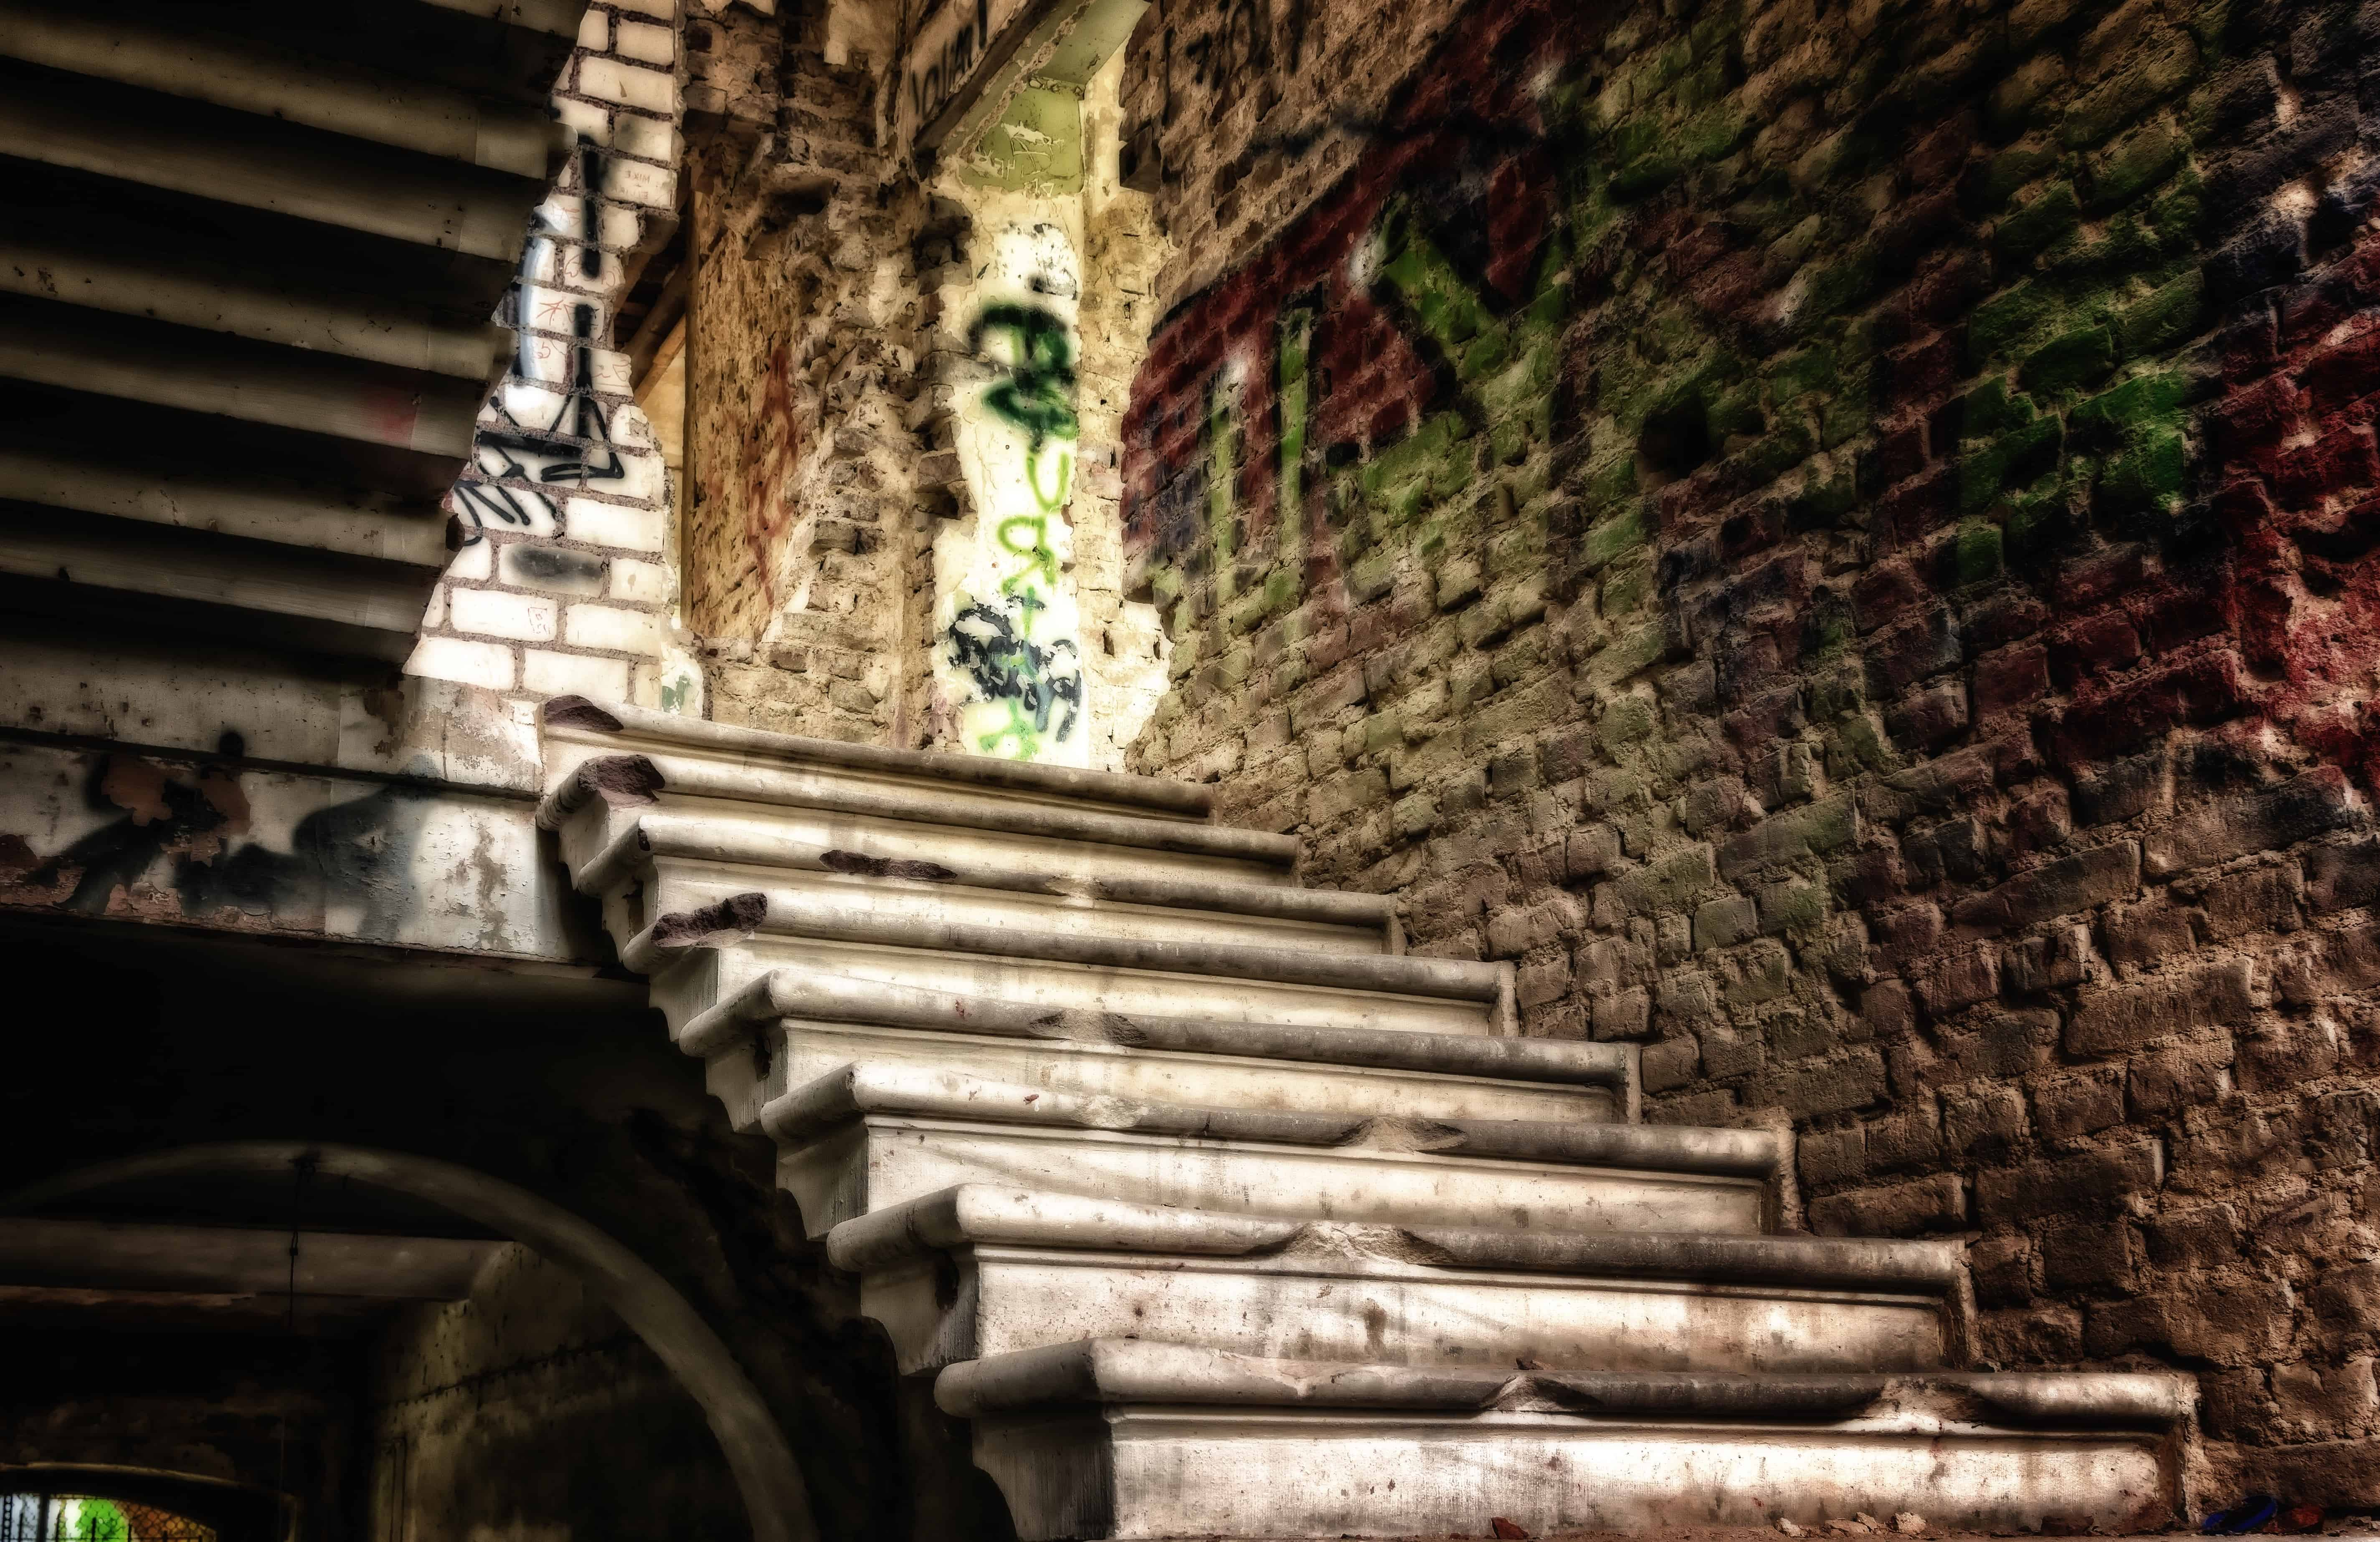 Free Picture  Architecture  Old  Stairs  Concrete  Ancient